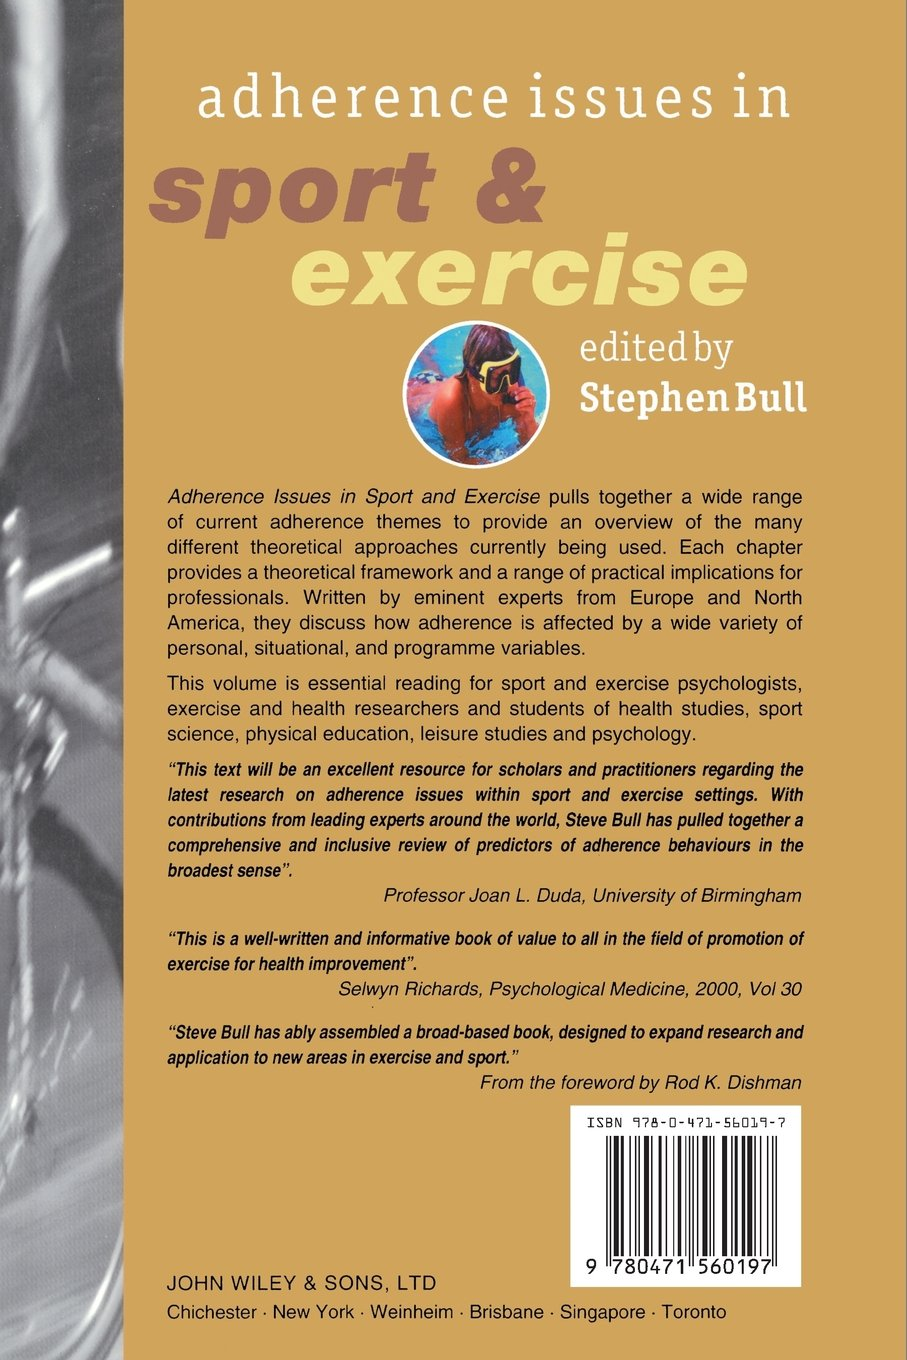 Adherence Issues in Sport And Exercise: Amazon.co.uk: Stephen Bull:  9780471560197: Books